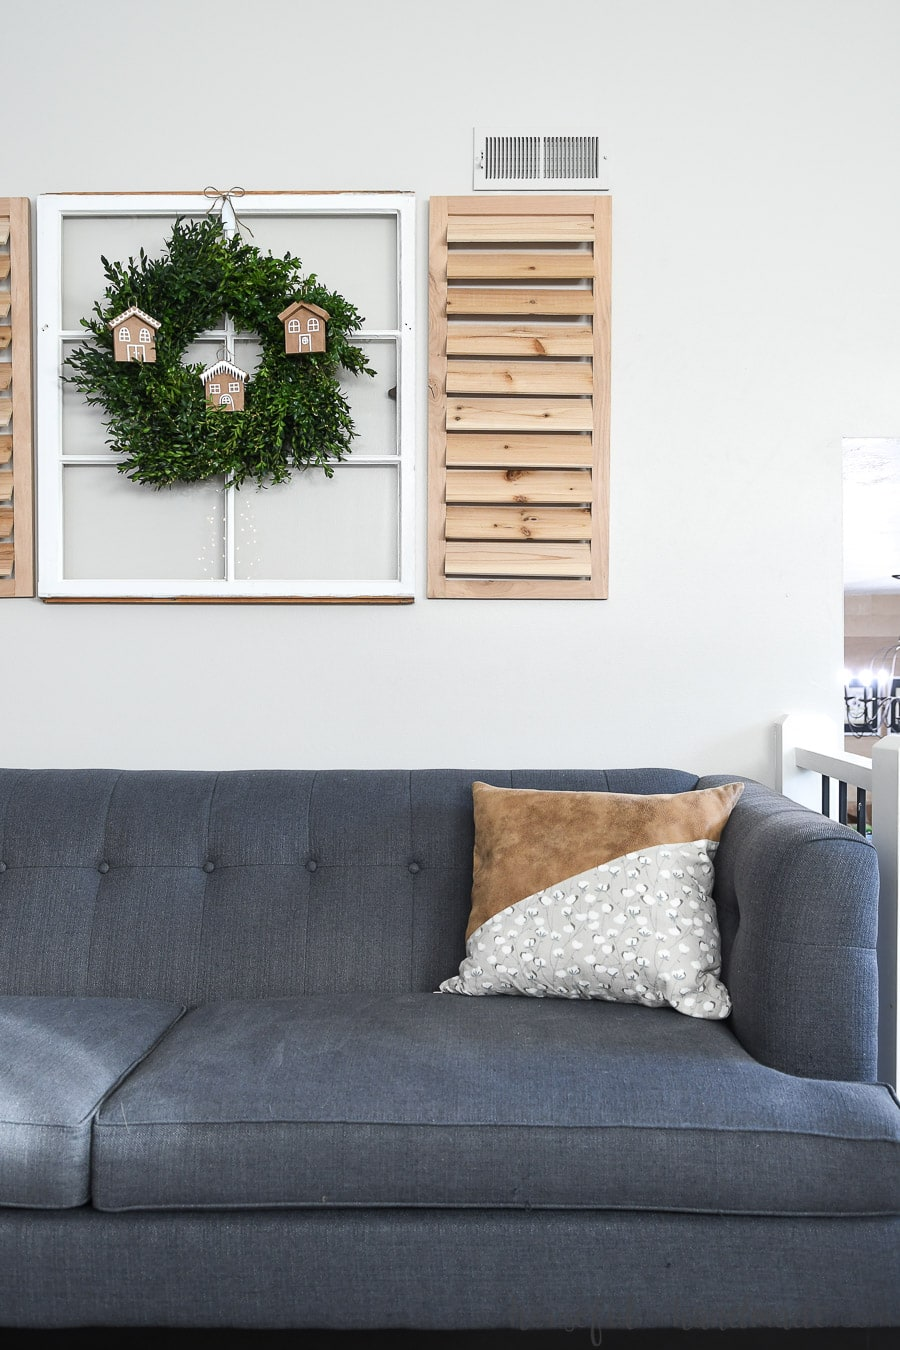 Living room with gray-blue couch and boxwood wreath hanging on a vintage mirror with shutter decor and paper Christmas ornaments.